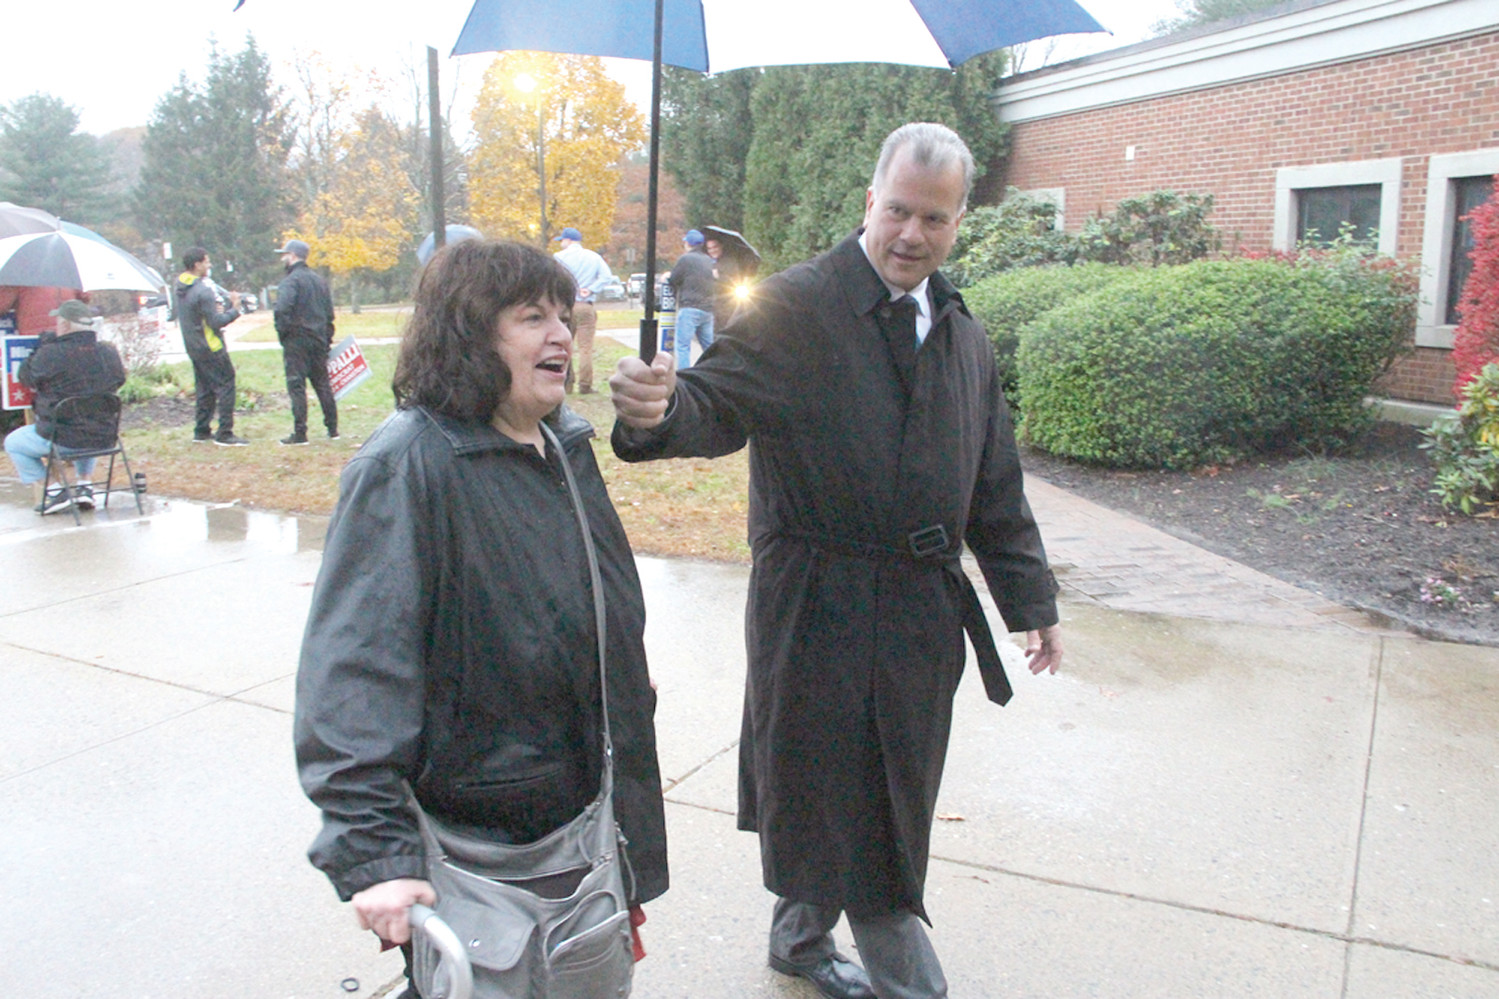 LENDING A HAND IN THE RAIN: Nicholas Mattiello, Democrat candidate for House Dist. 15 and current Speaker of the House, was also as Hope Highlands Tuesday afternoon, here helping Mary Lombardi to the front door of the Western Cranston polling location.